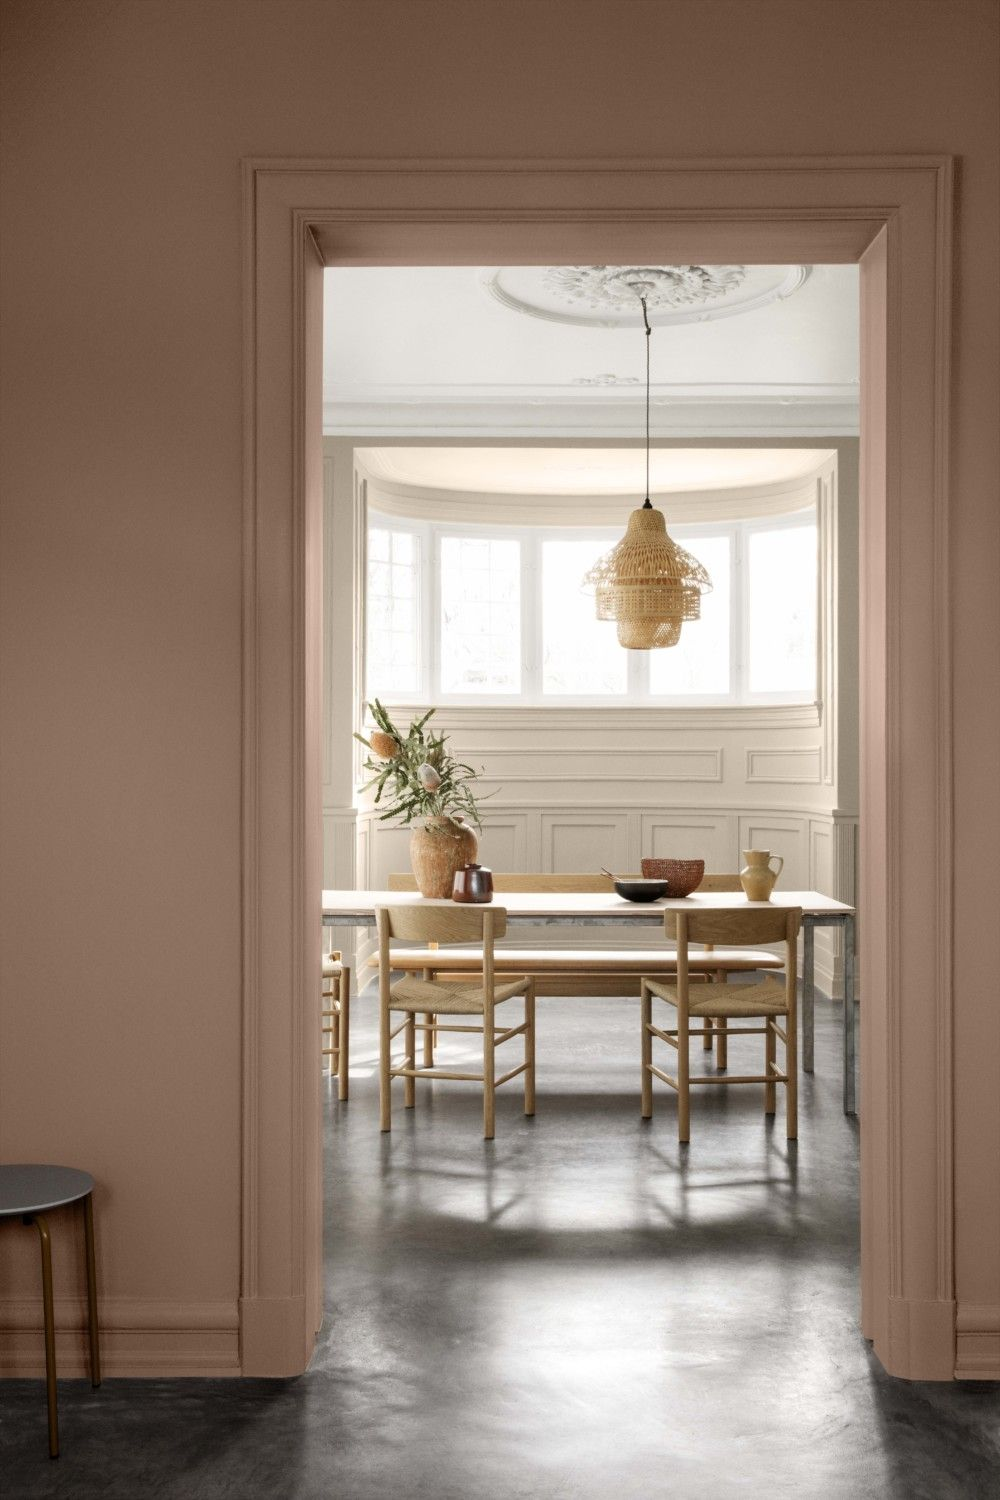 Best Of Latest Colour Trends for Kitchens